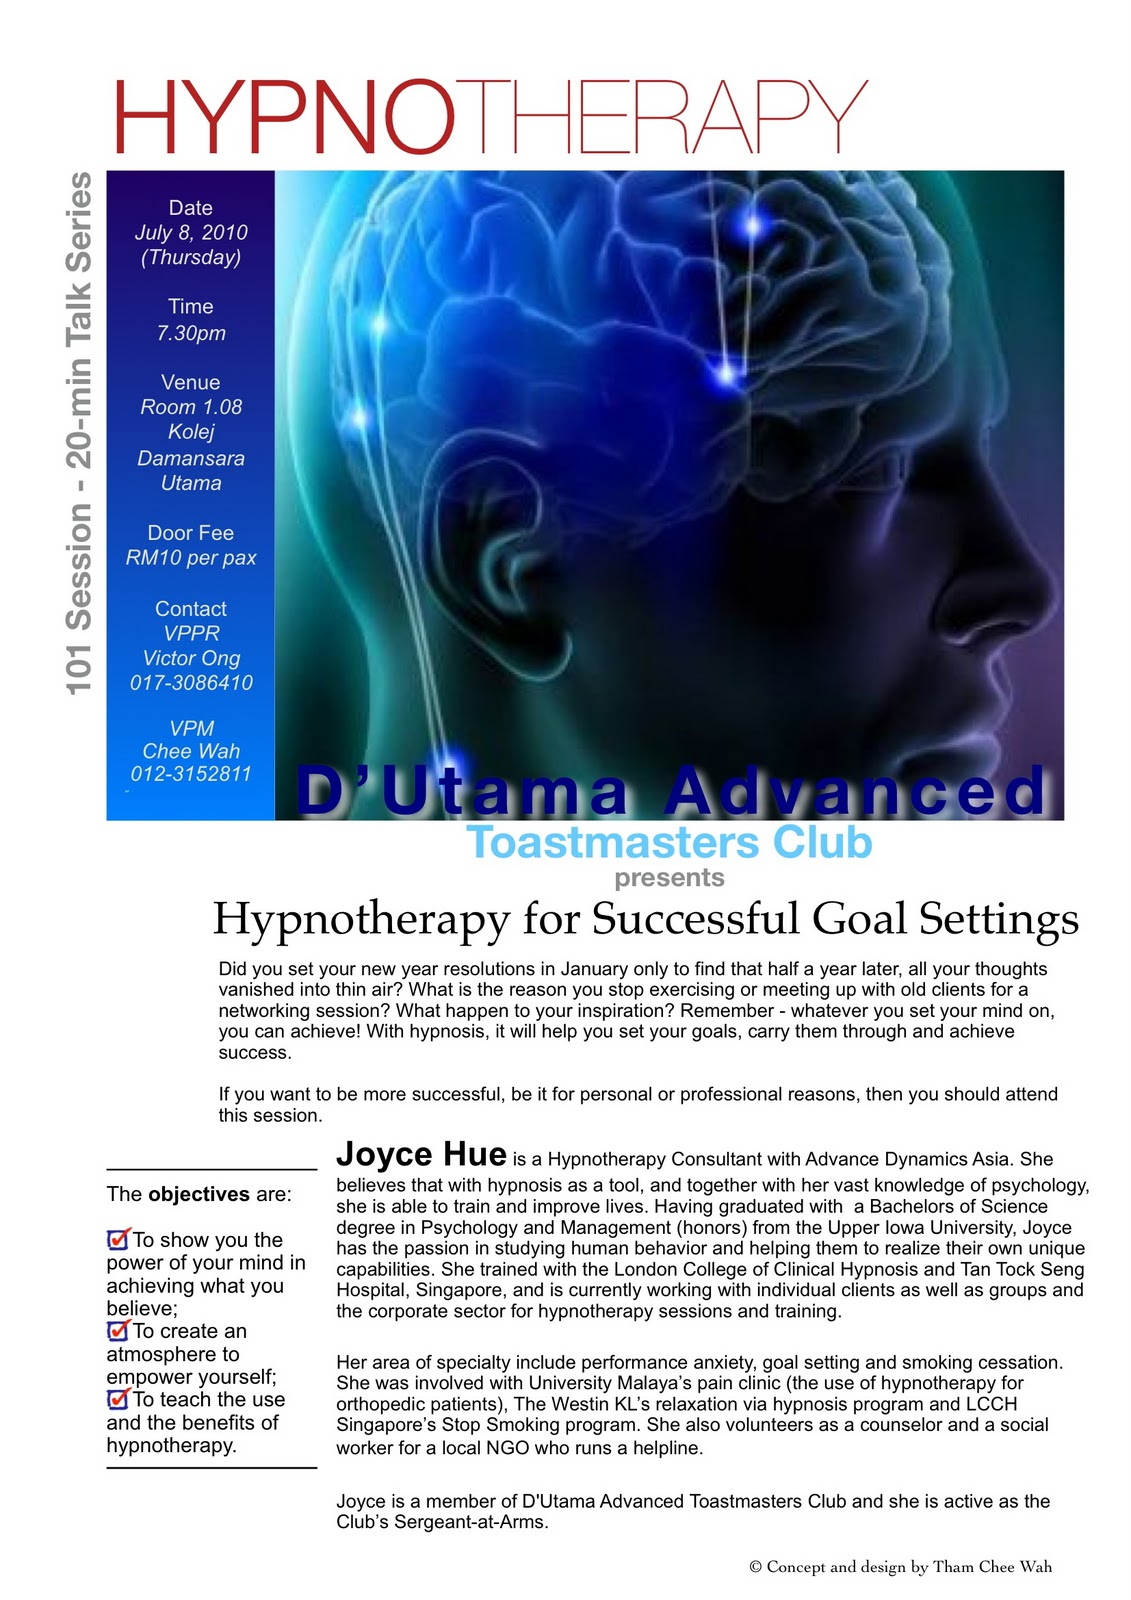 D'Utama Advanced Toastmasters Club: Hypnotherapy for ...